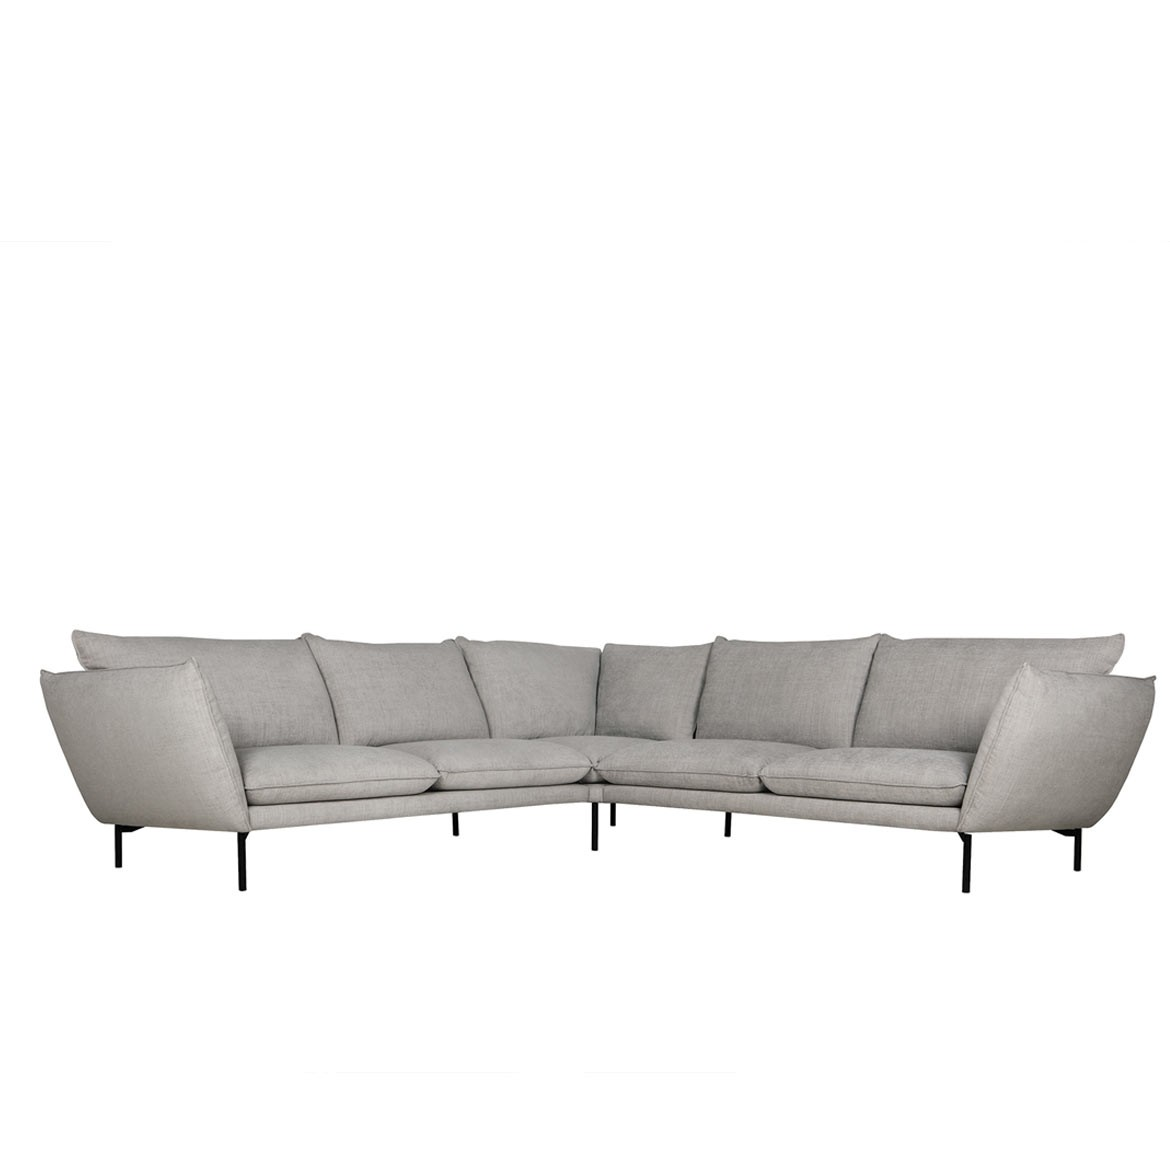 Hug corner sofa - set 3